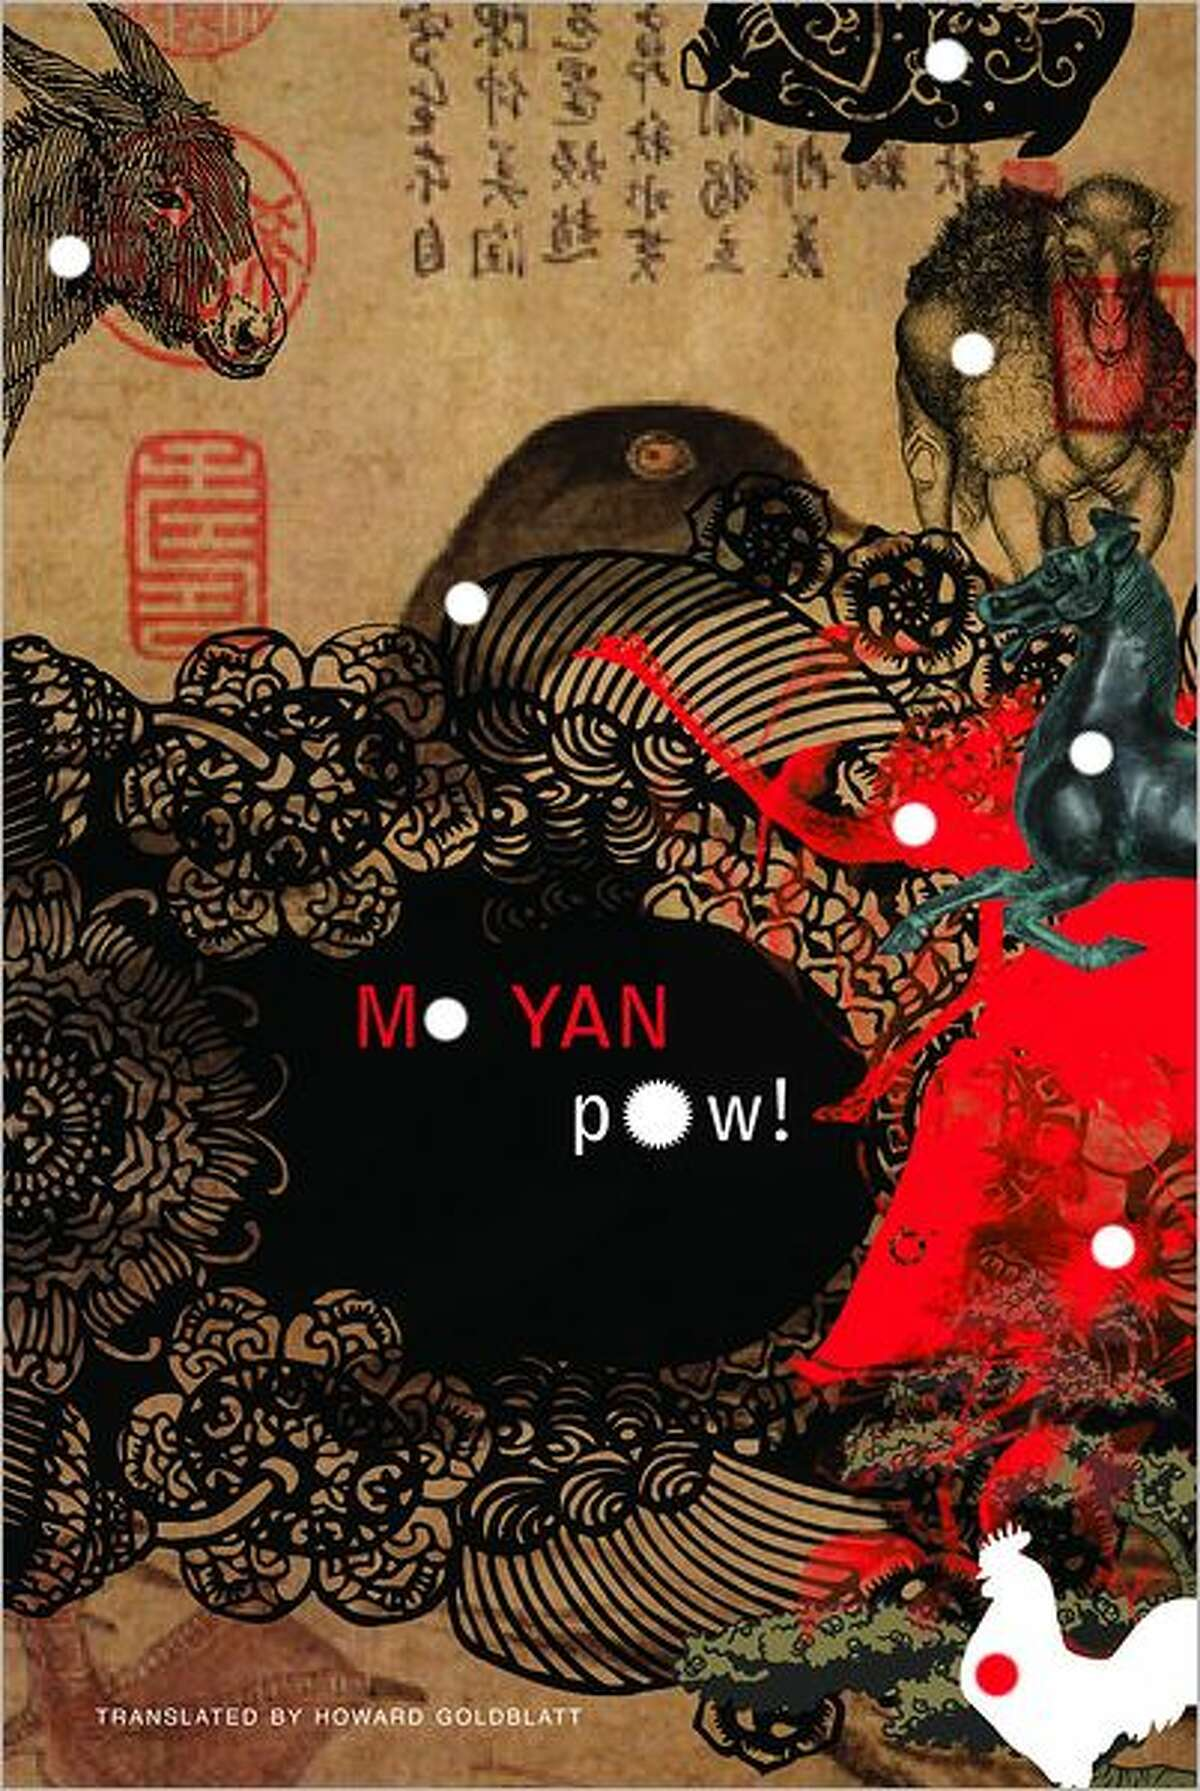 ?Pow!? By Mo Yan Translated by Howard Goldblatt. 386 pages. Seagull Books. $27.50.